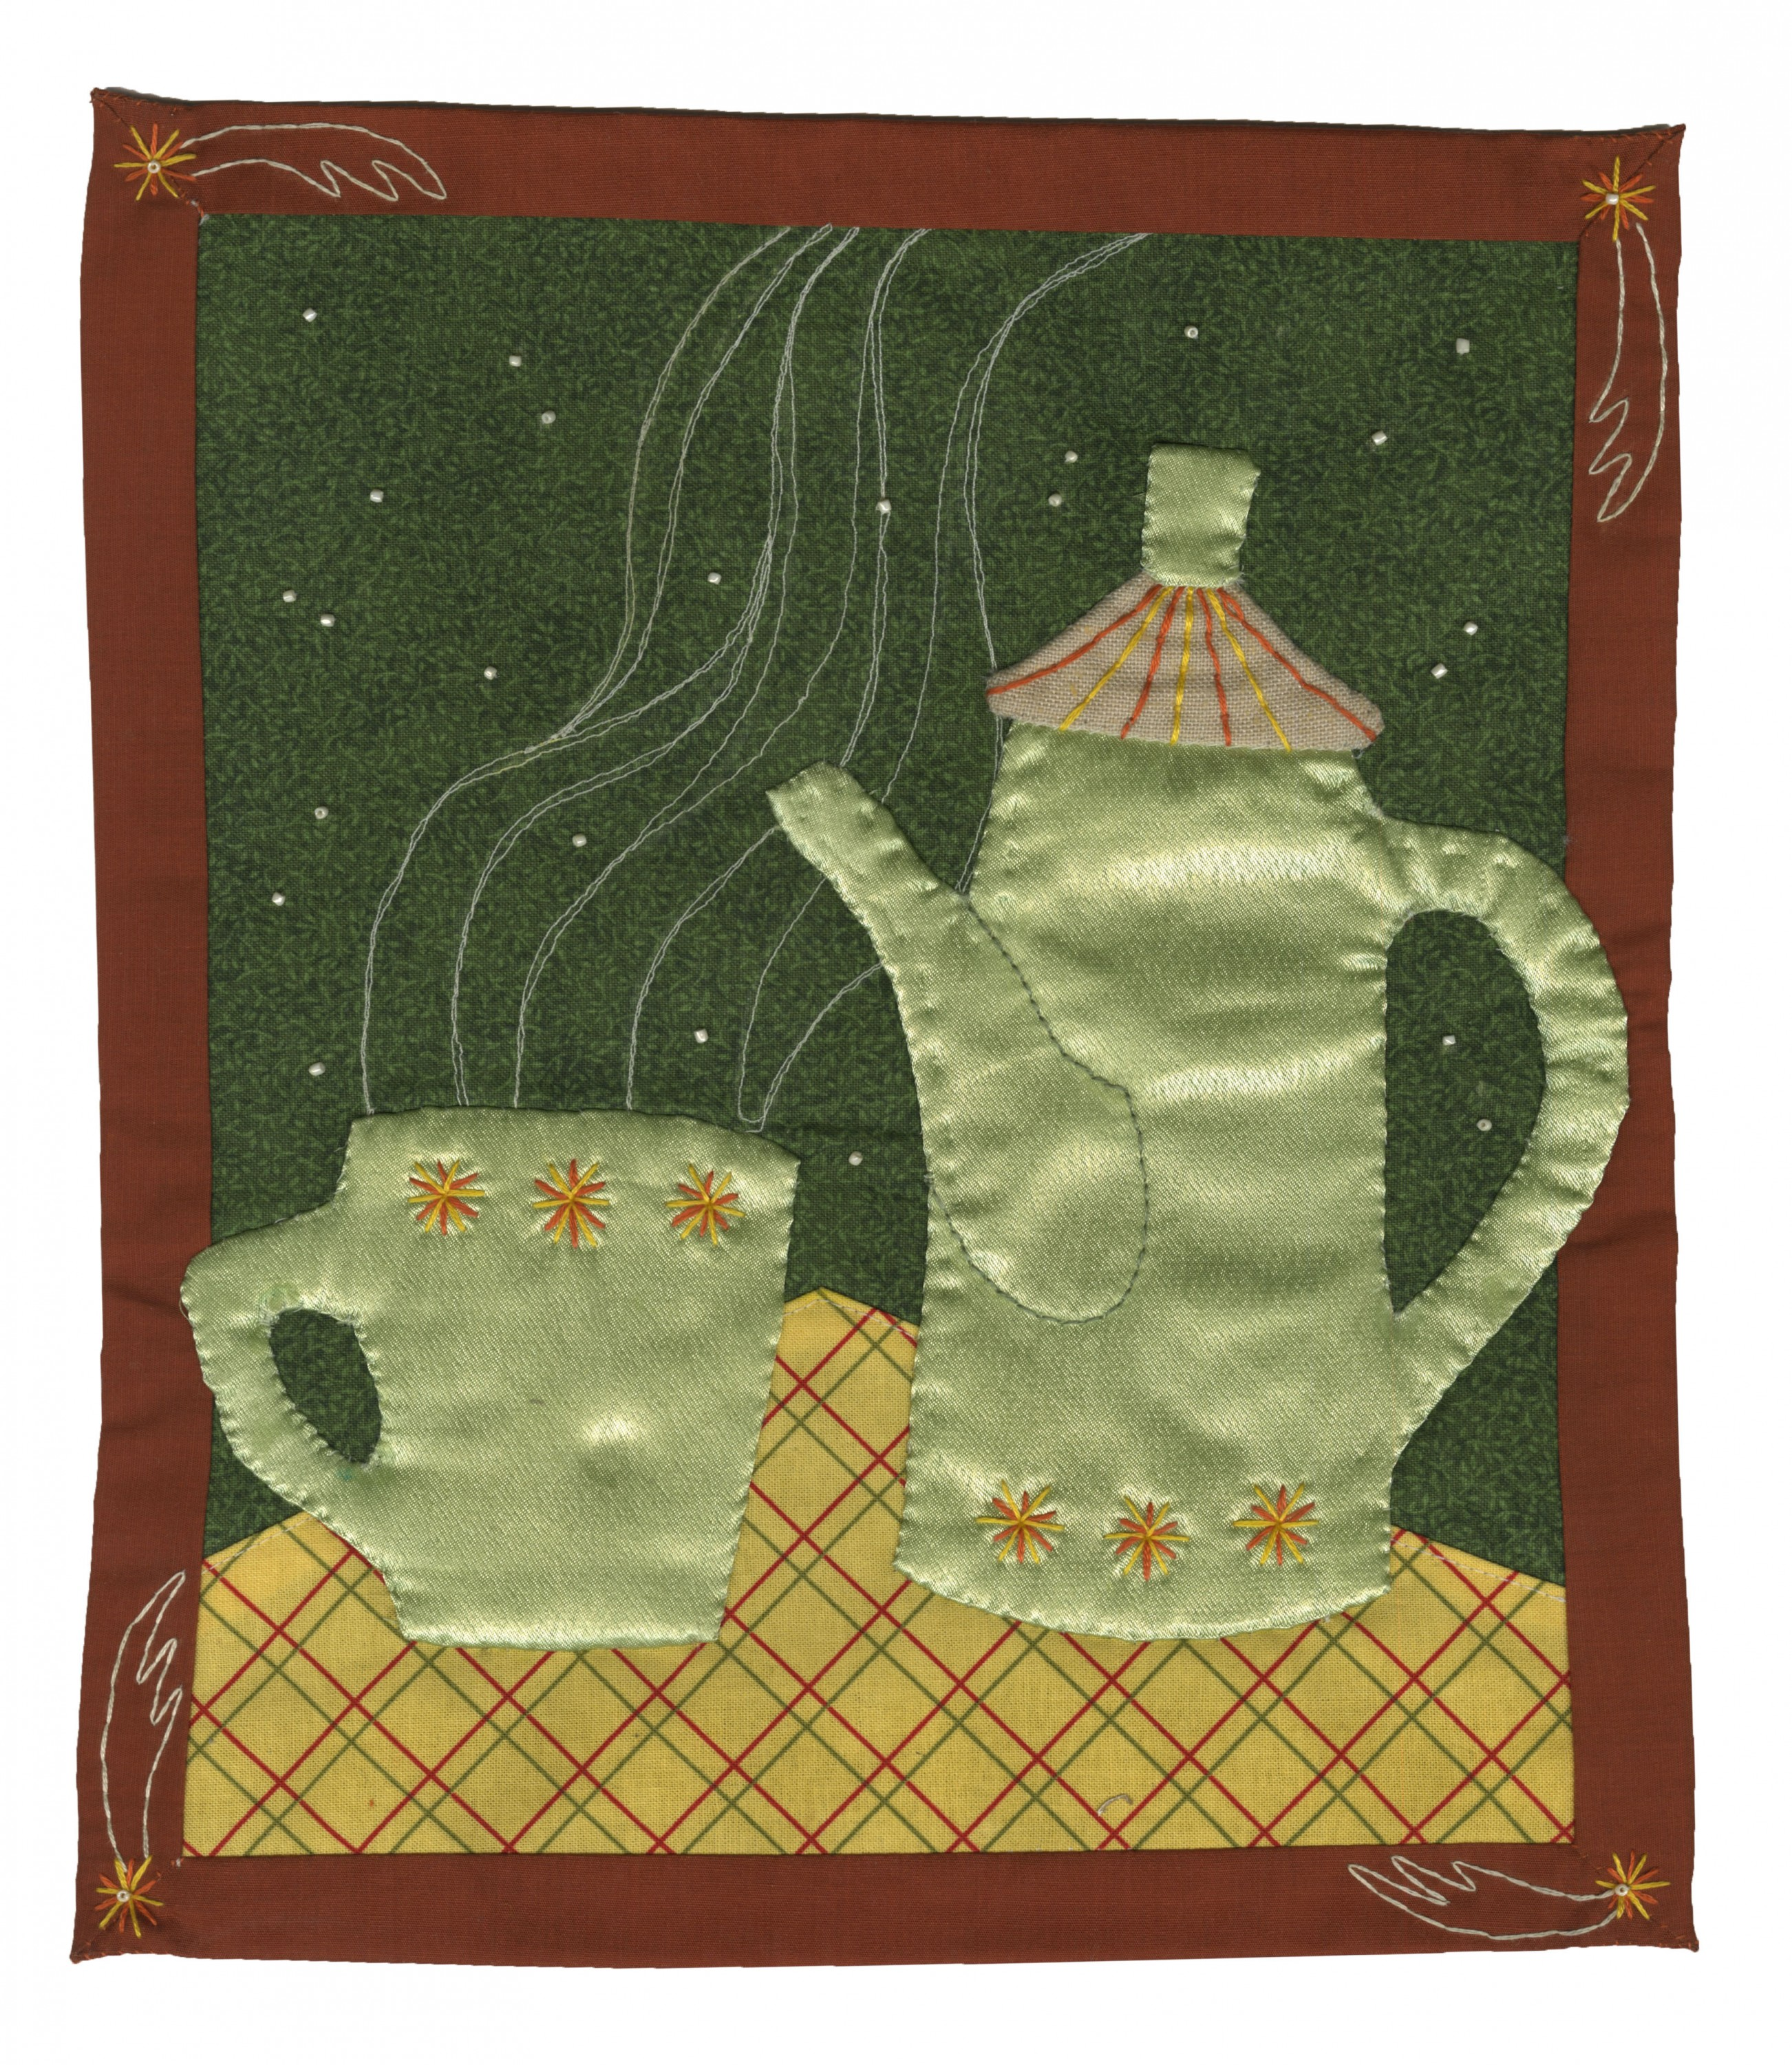 There is an applique that shows a light green midcentury coffee pot and a matching mug on a dark green background. it has an orange frame with shooting stars embroidered on the corners. it is sewn onto the back of a denim jacket, with yellow fringe above